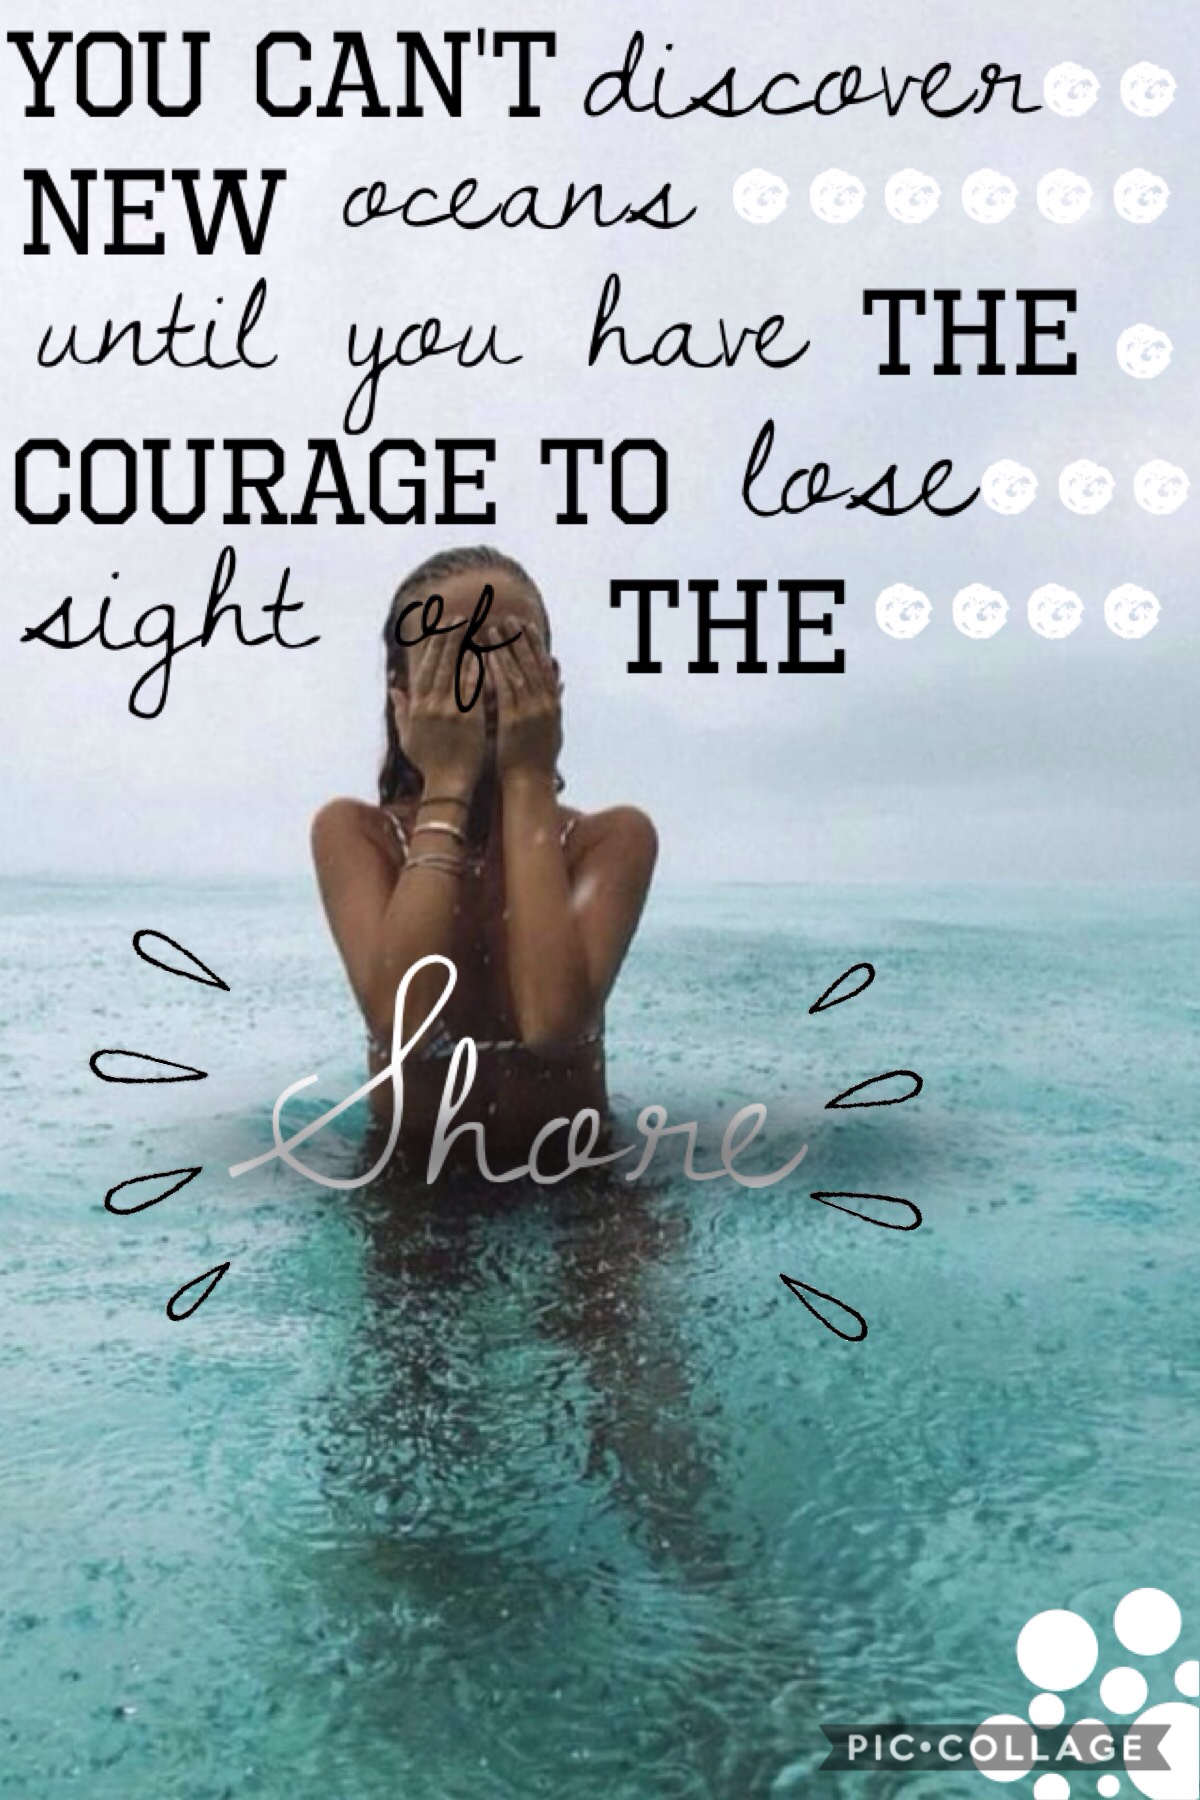 Tap!  I know this isn't the best collage but I like the quote and I had the background so I made the collage           * woah*